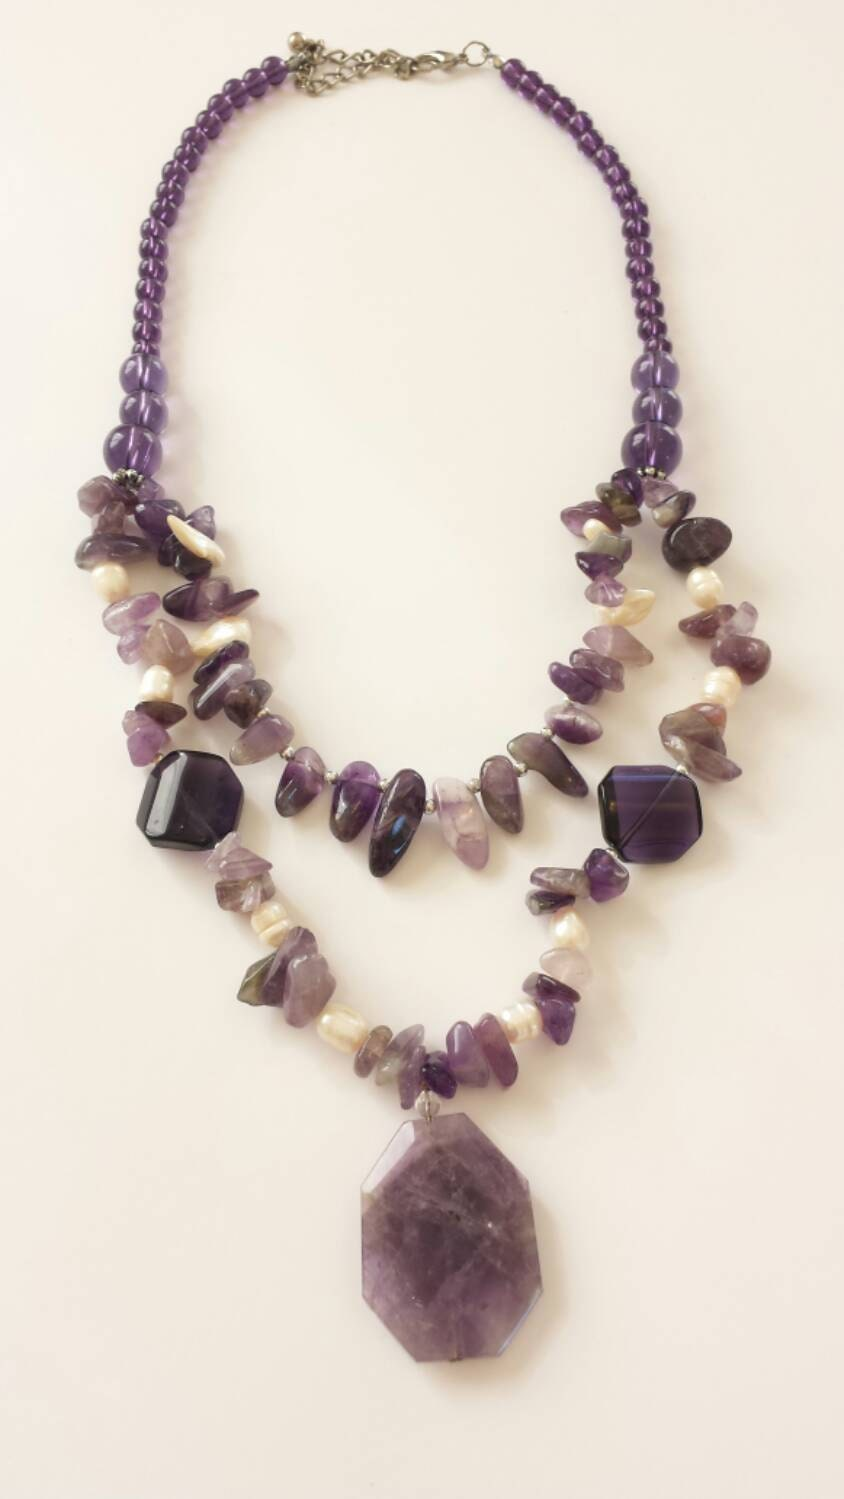 amethyst stone necklace - photo #21